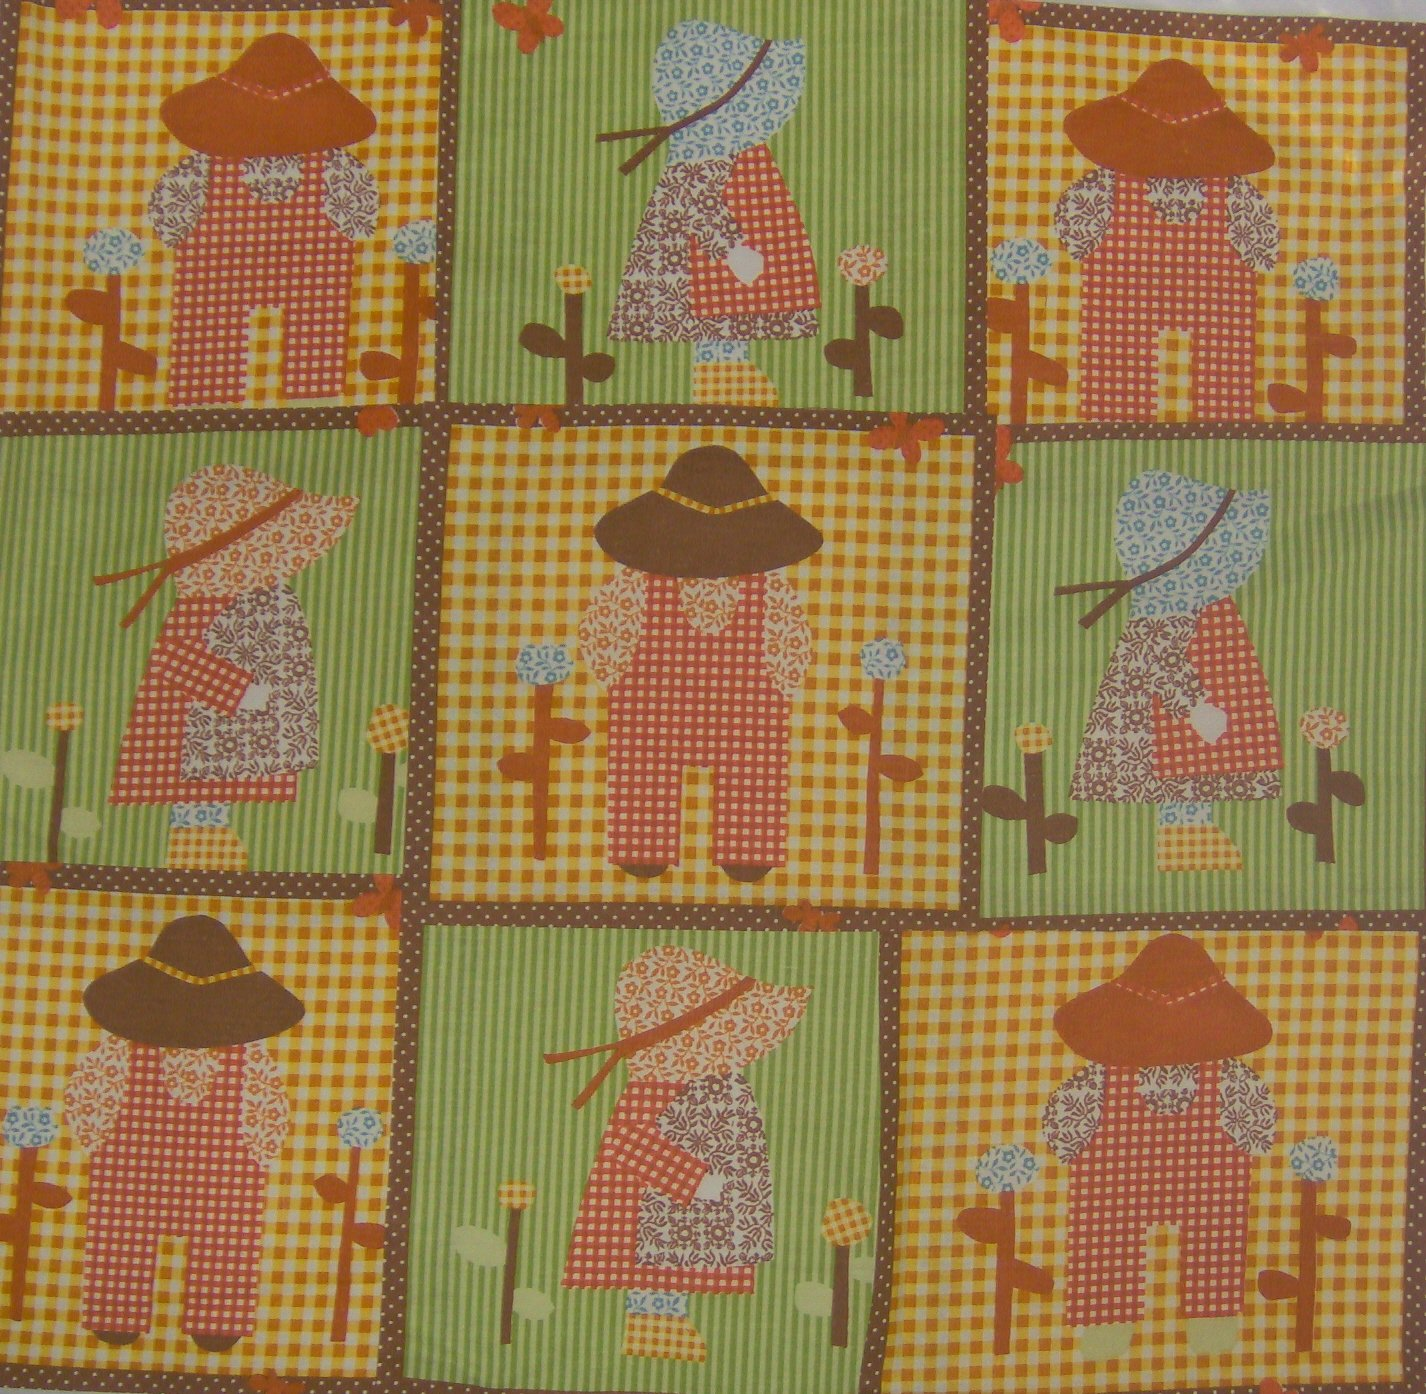 Vintage Waverly Sunbonnet Sue and Overall Bill Fabric Squares LAST BLOCKS!